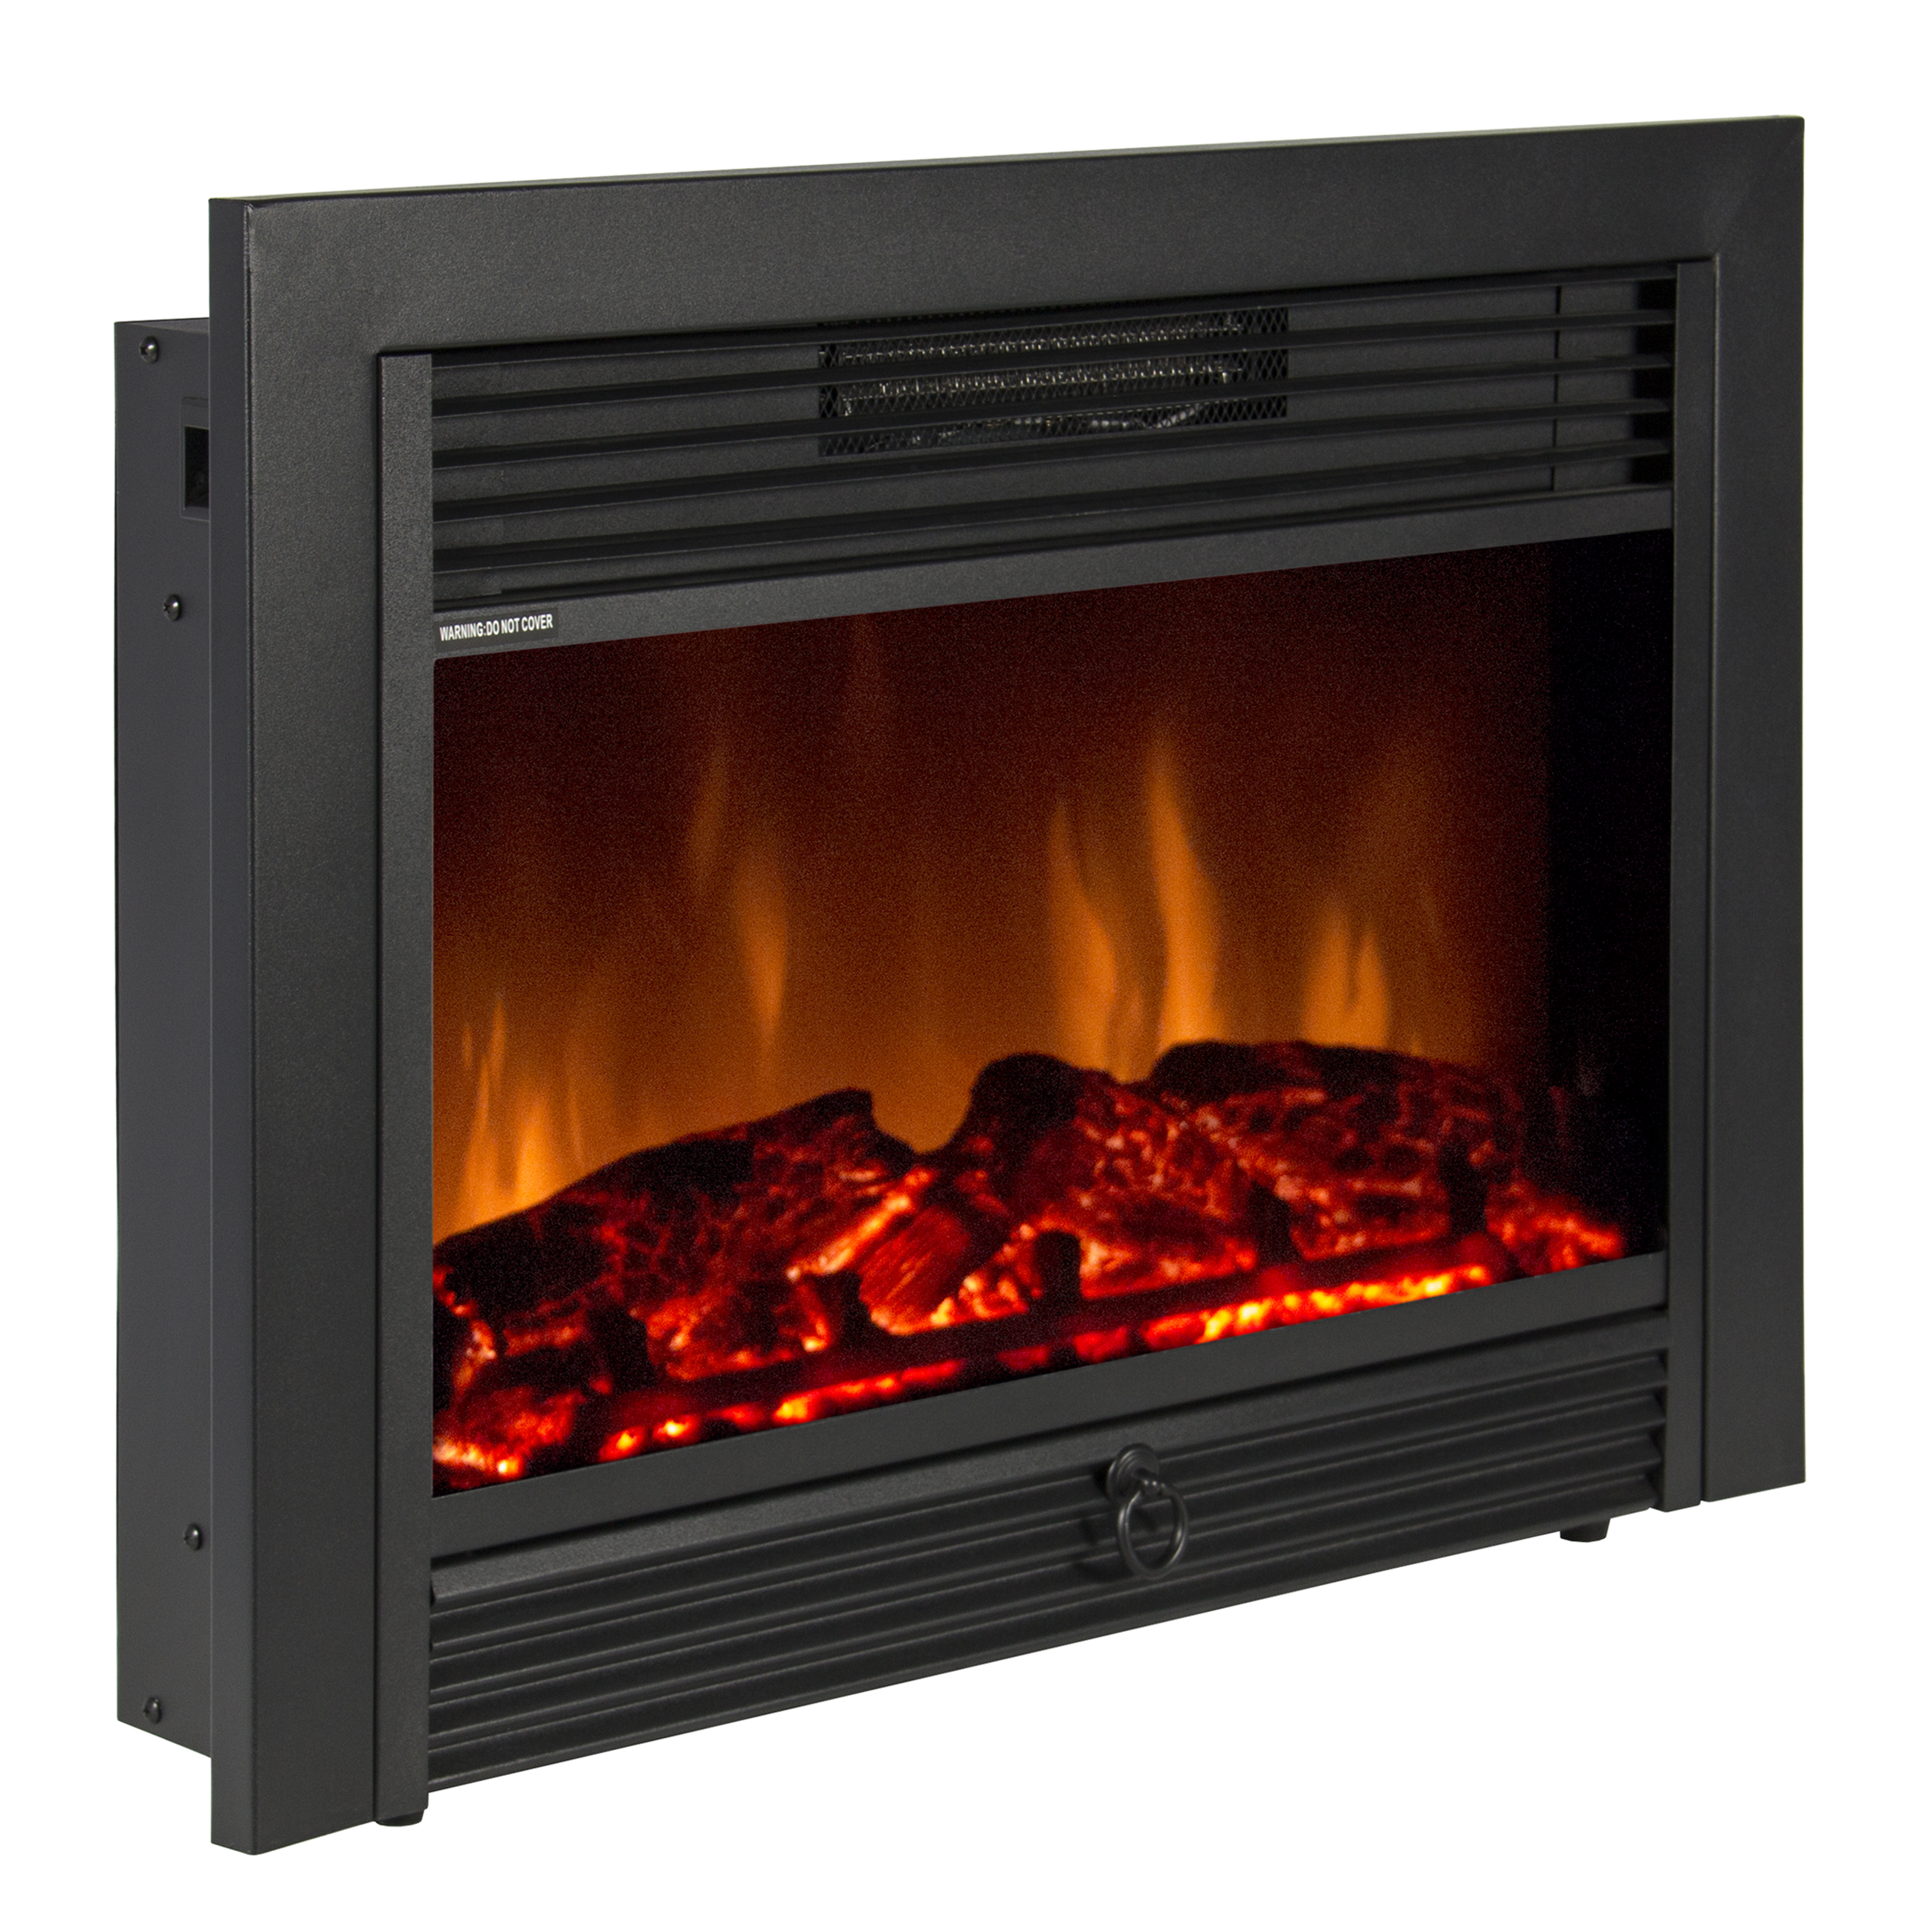 Best Choice Products 28.5in Insert Electric Adjustable Fireplace Heater Display w/ 5 Brightness Levels, 3D Logs, Realistic Flames, Remote Control